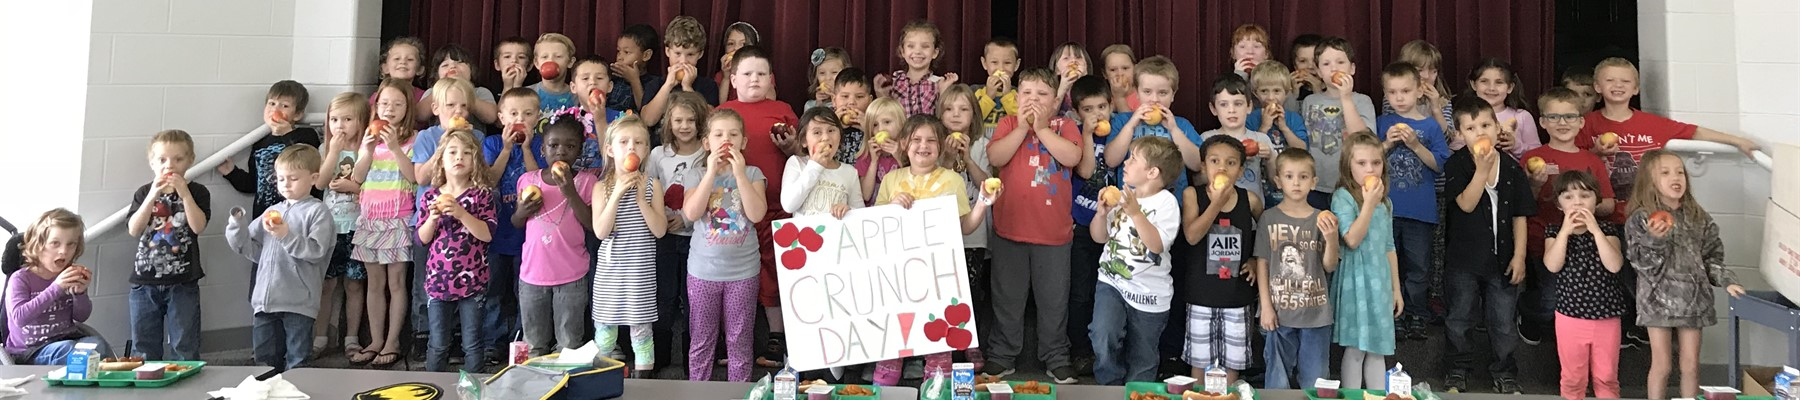 Apple Crunch Day at The Plains Elementary